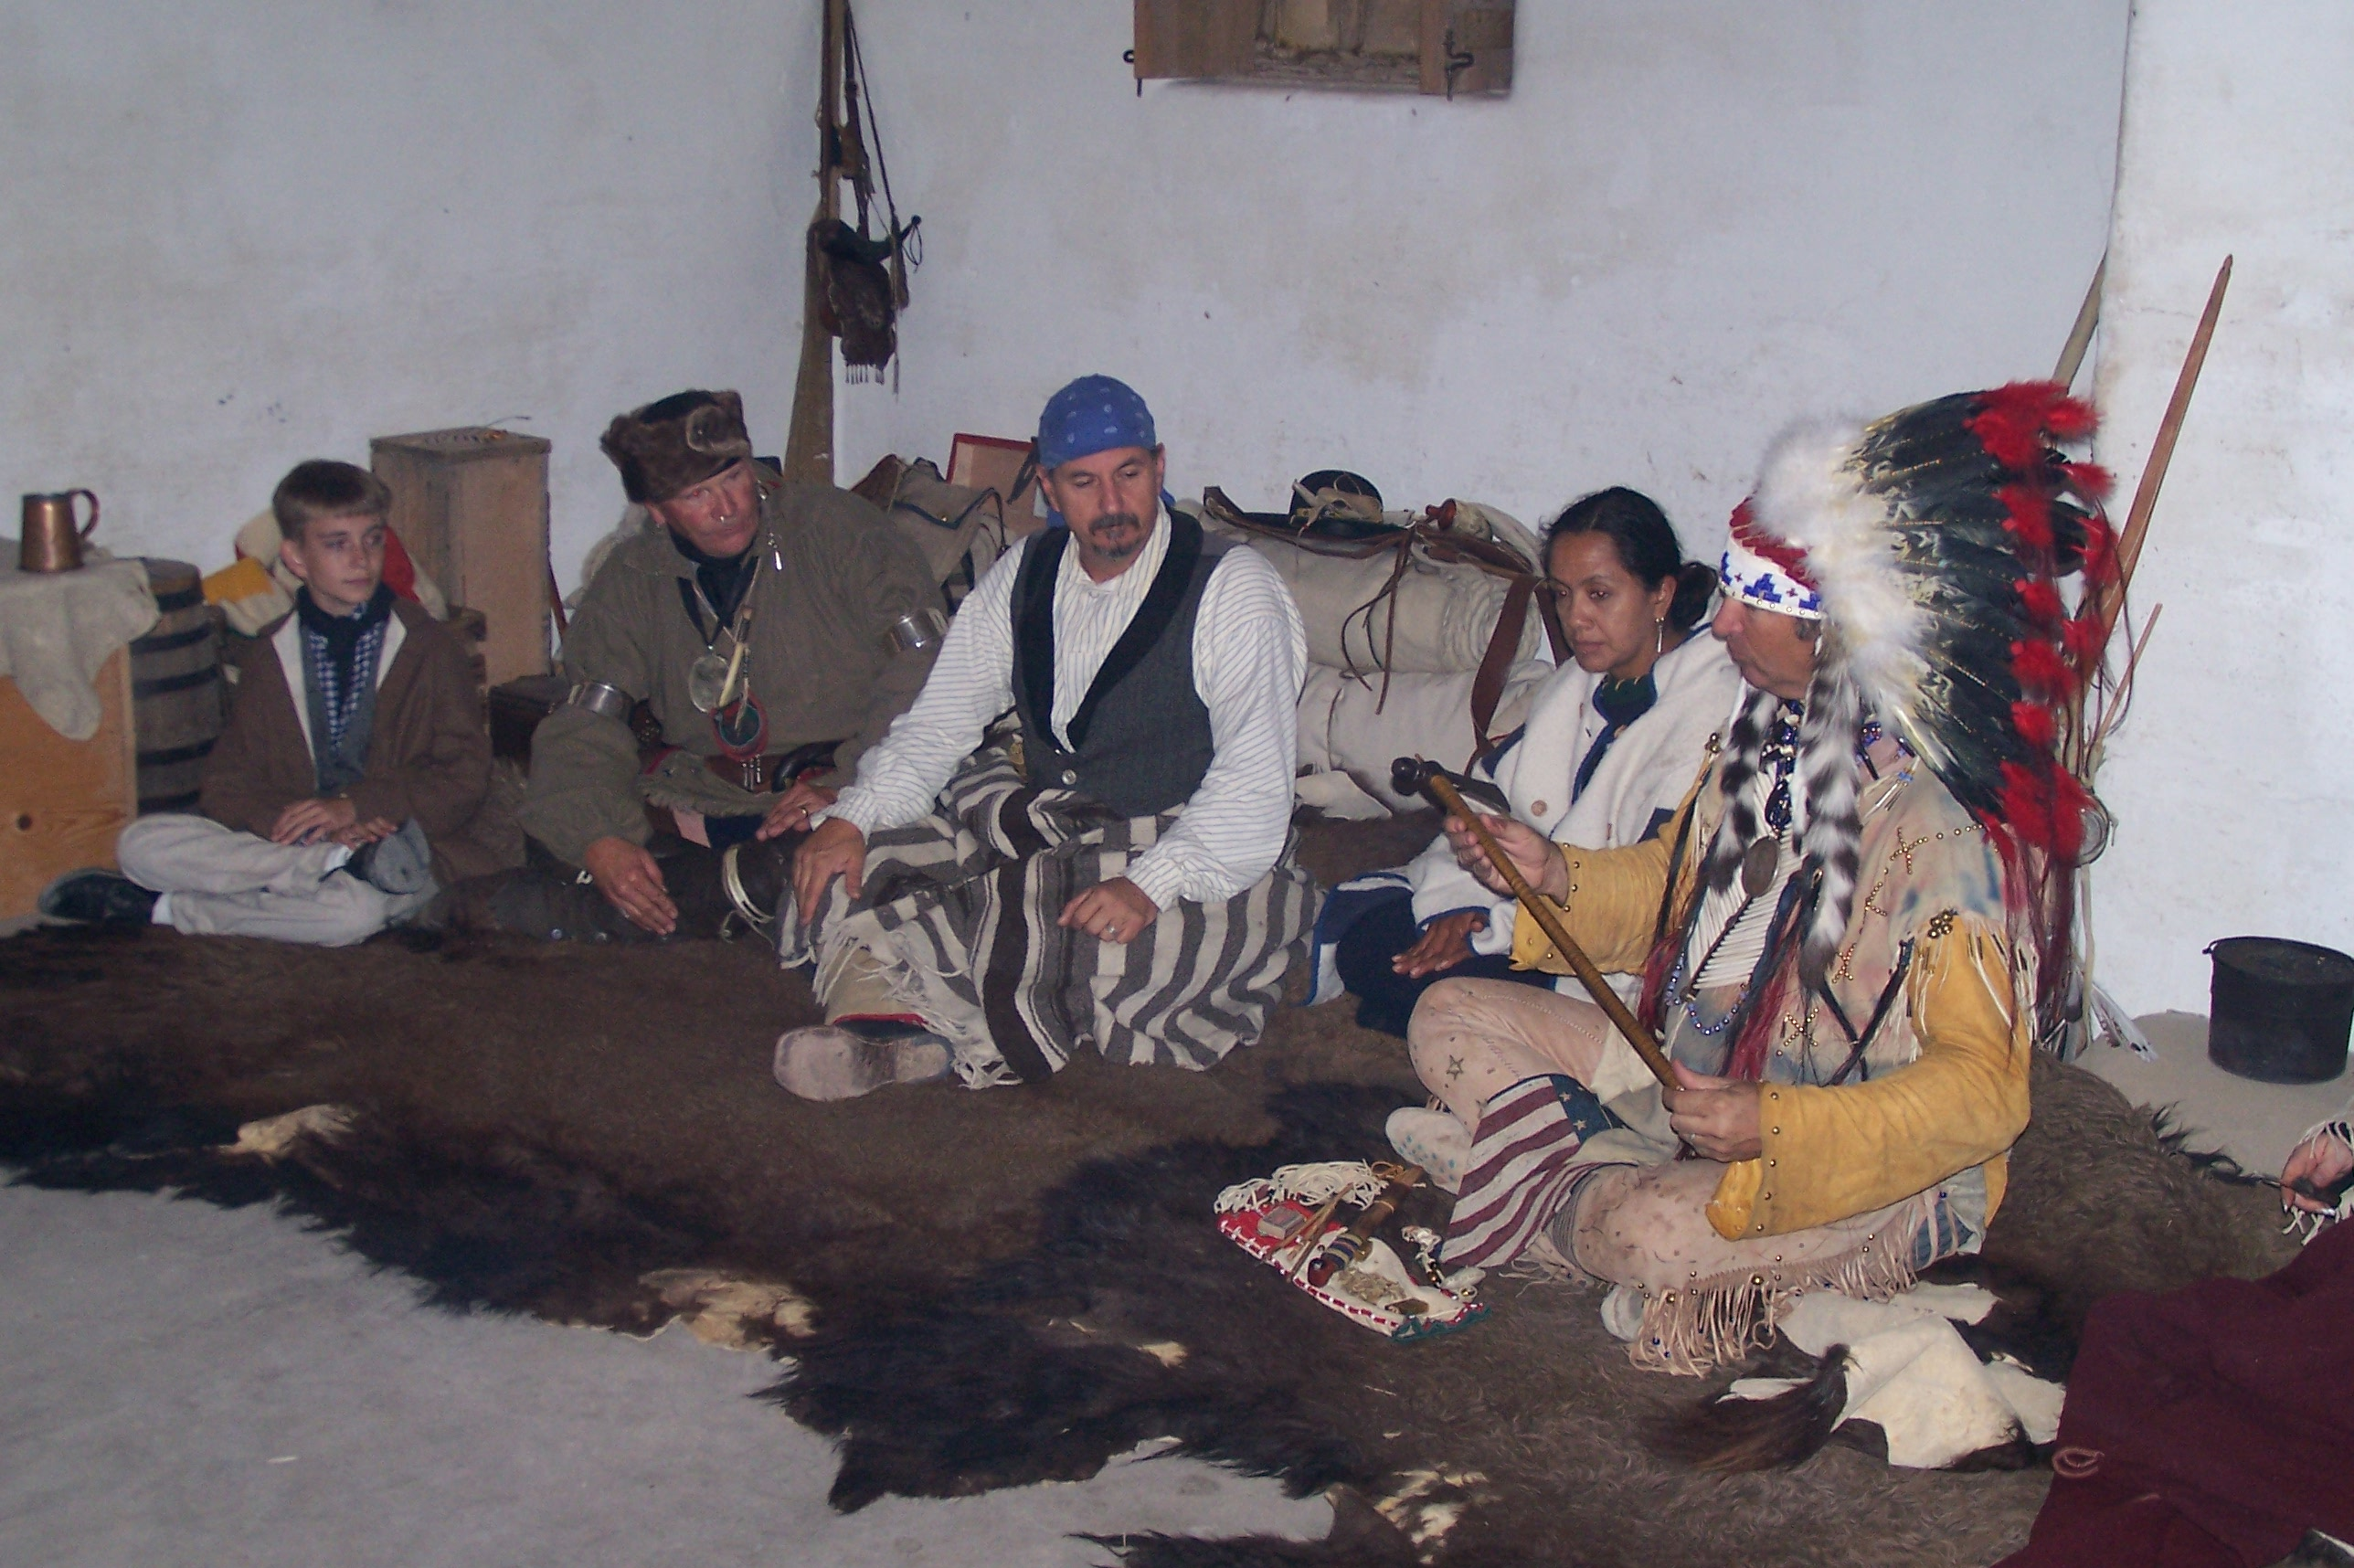 Cheyenne and traders conduct trade in the fort council room